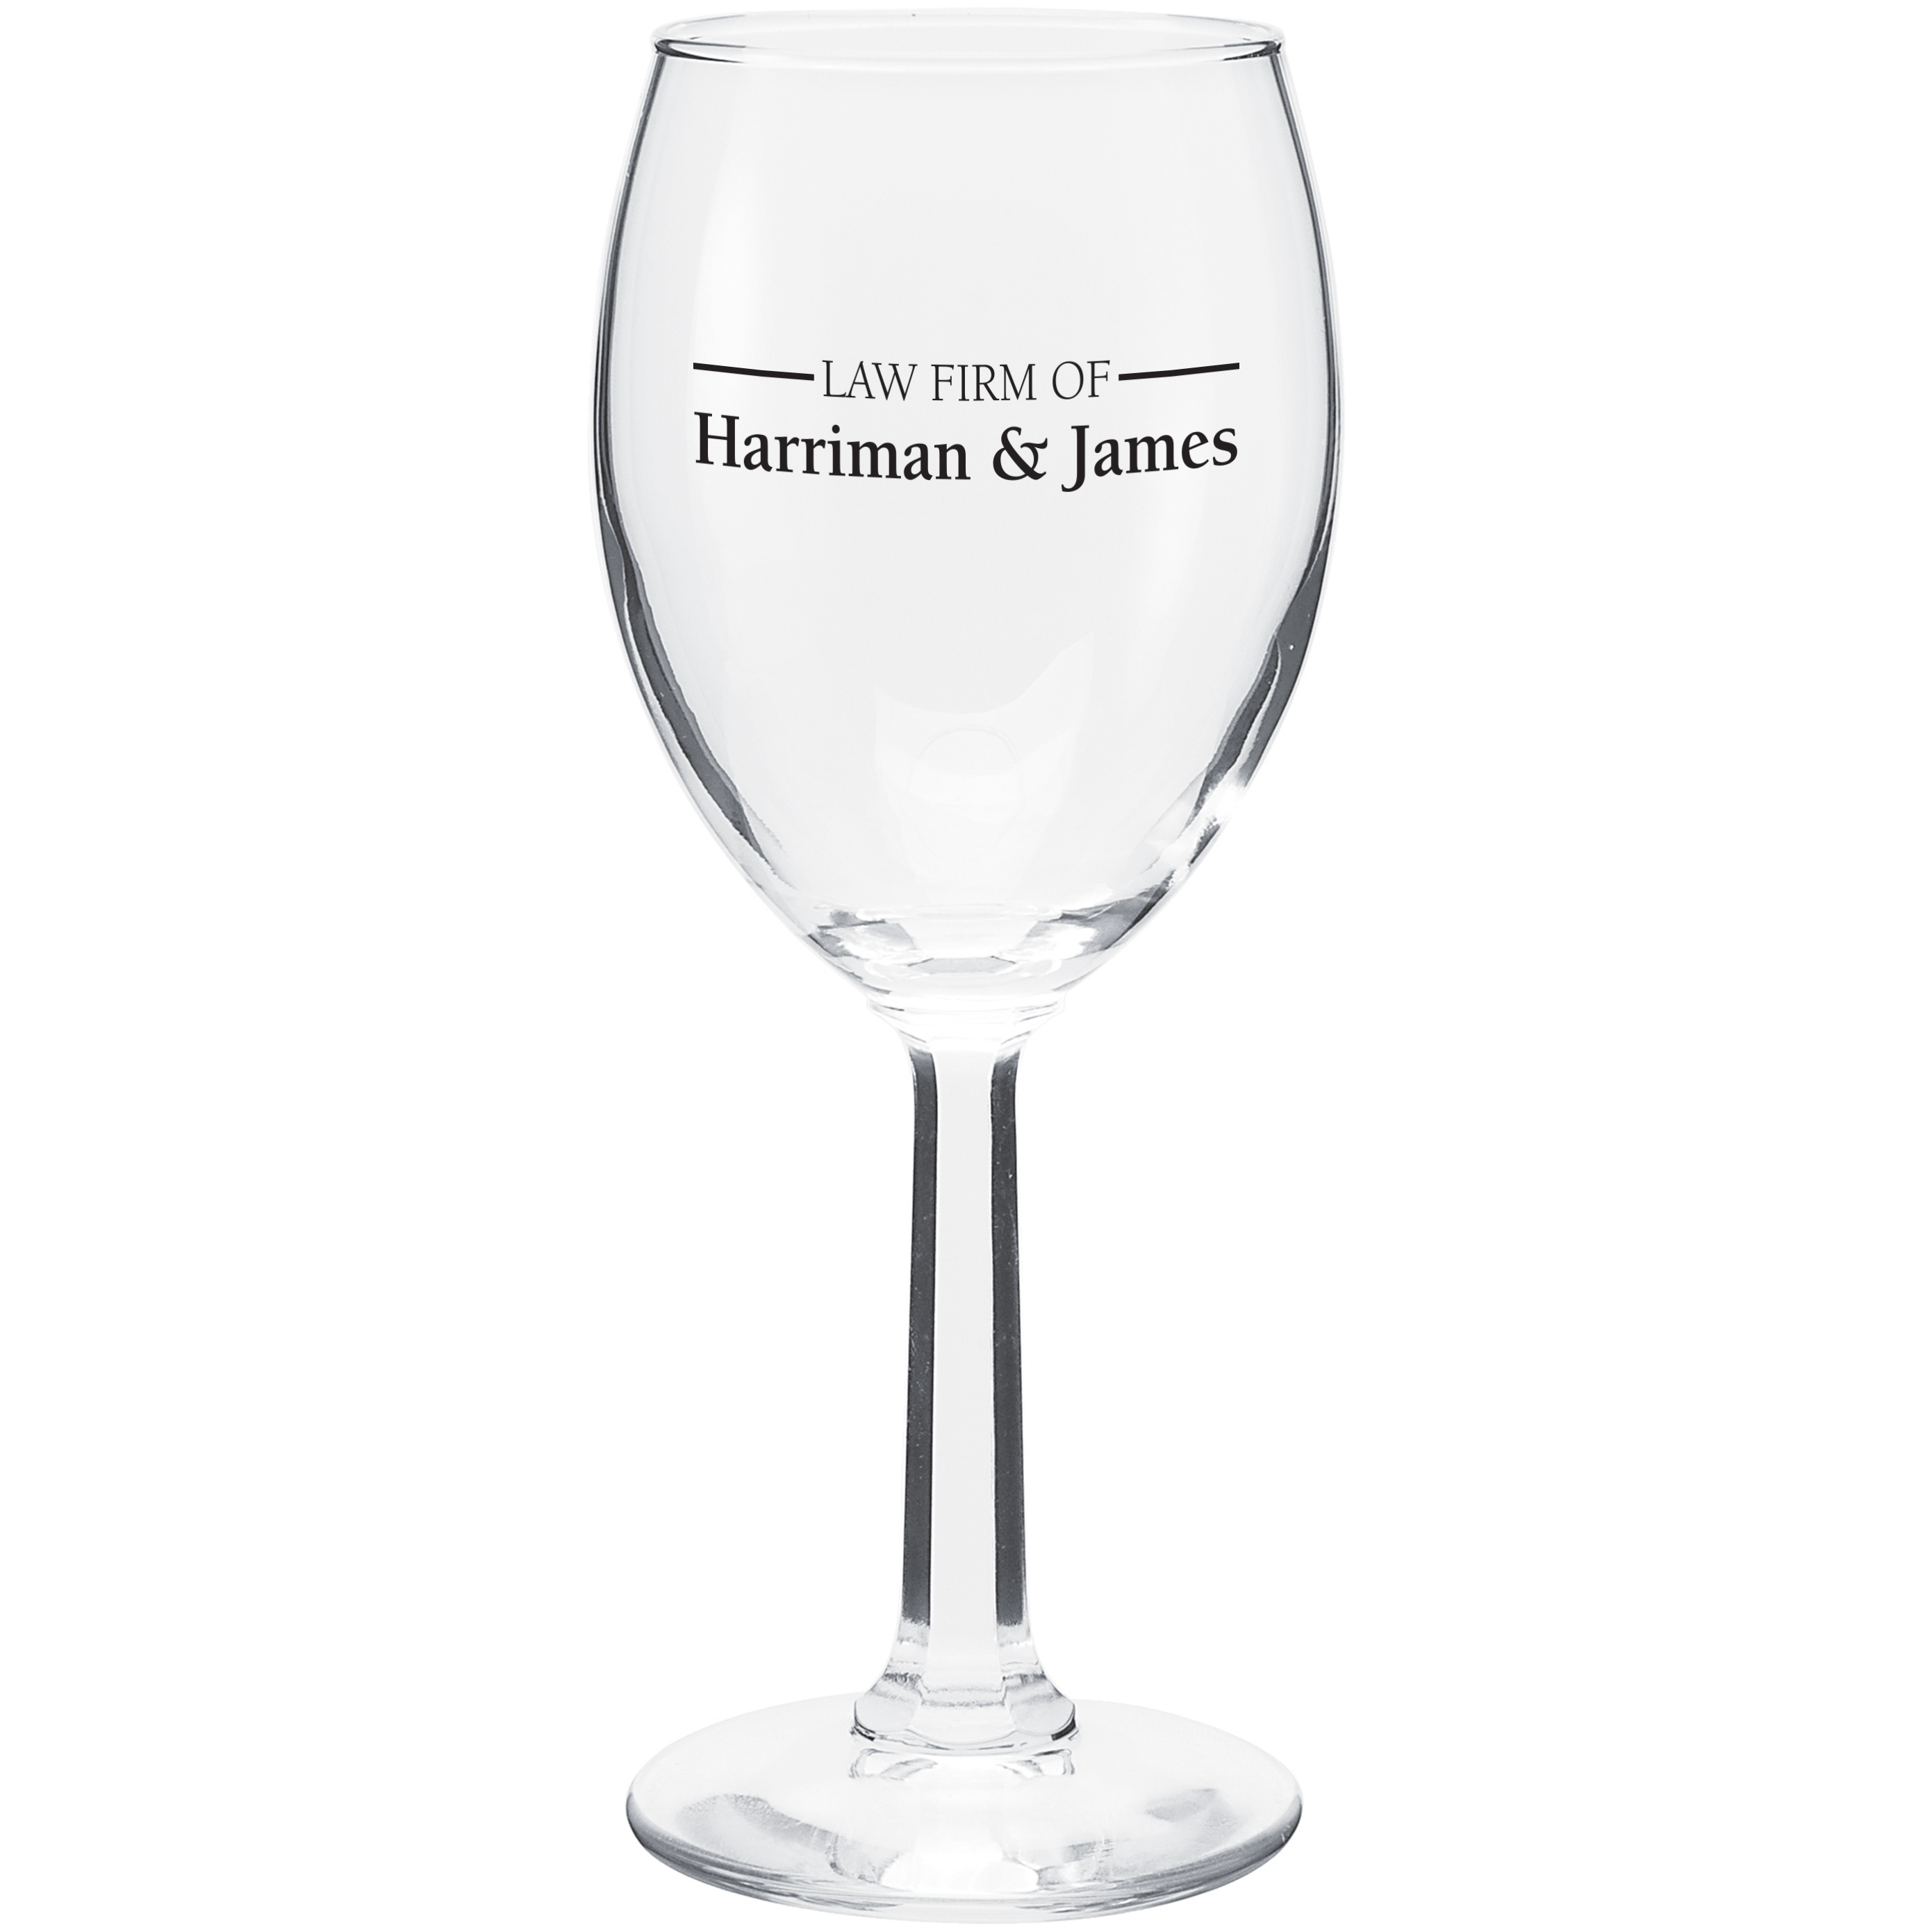 Napa Wine Glass, 7-3/4oz.